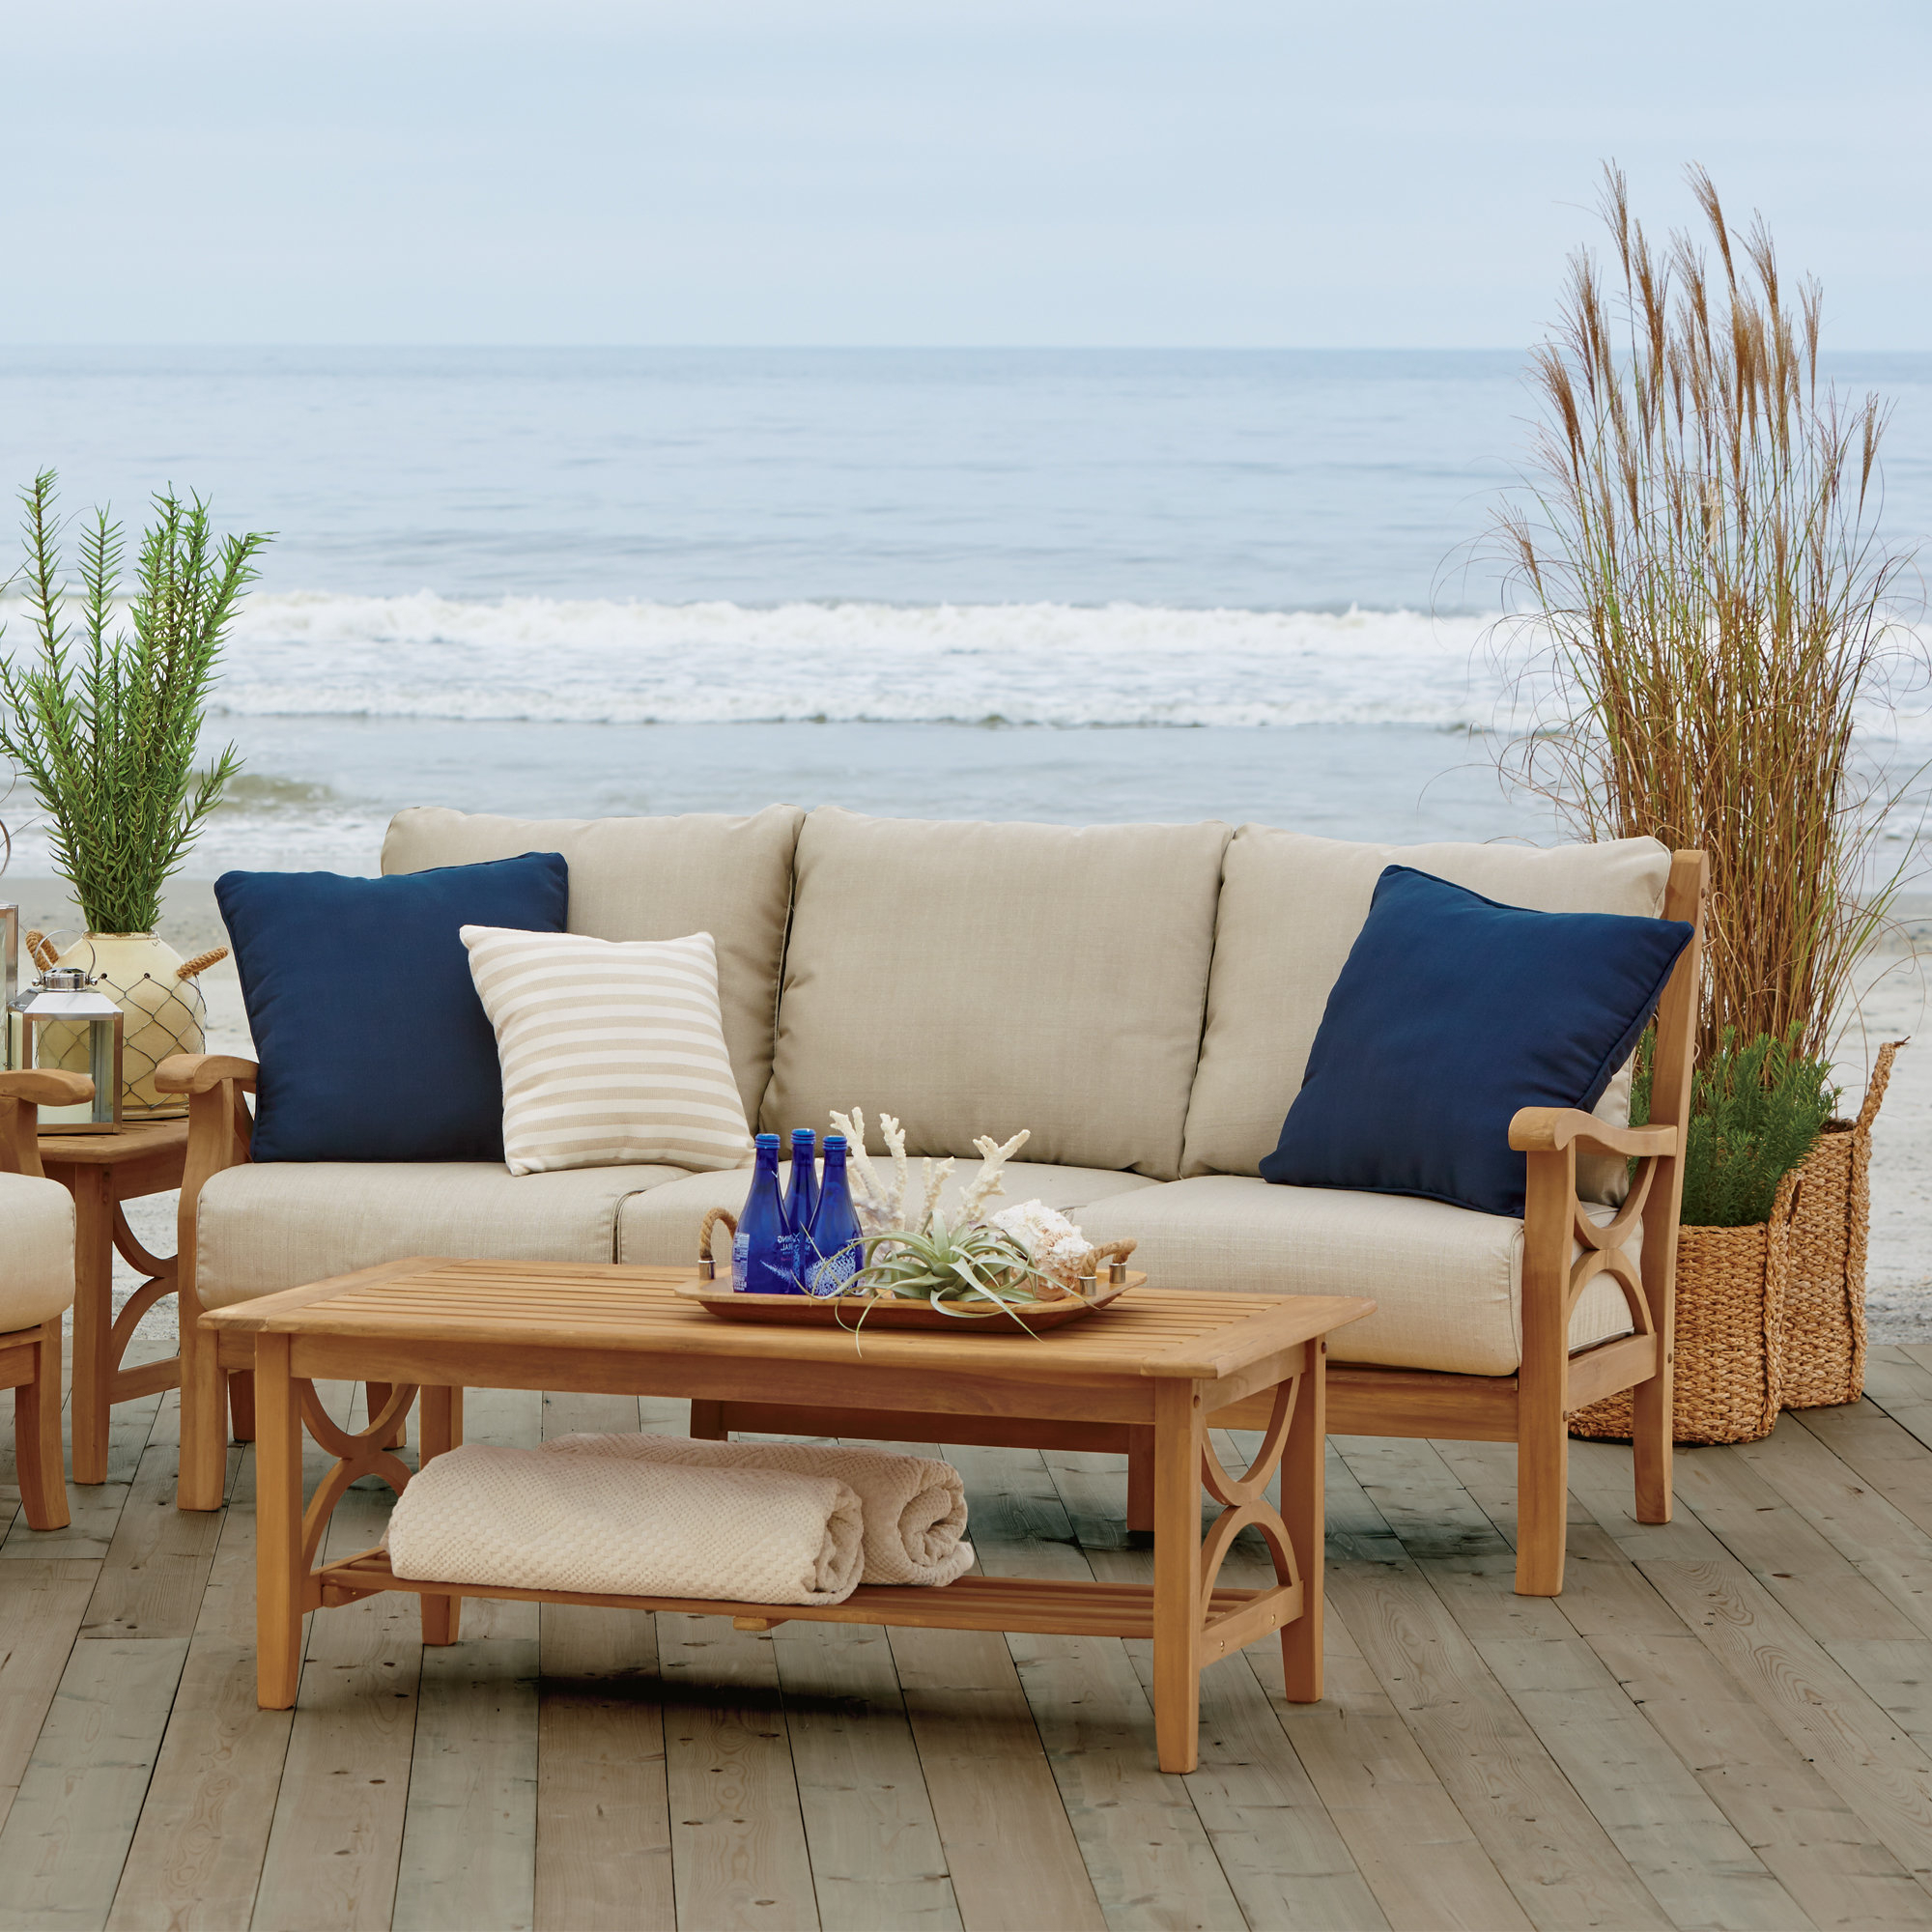 Fashionable Brunswick Teak Patio Sofa With Cushions Intended For Elaina Teak Loveseats With Cushions (View 10 of 20)